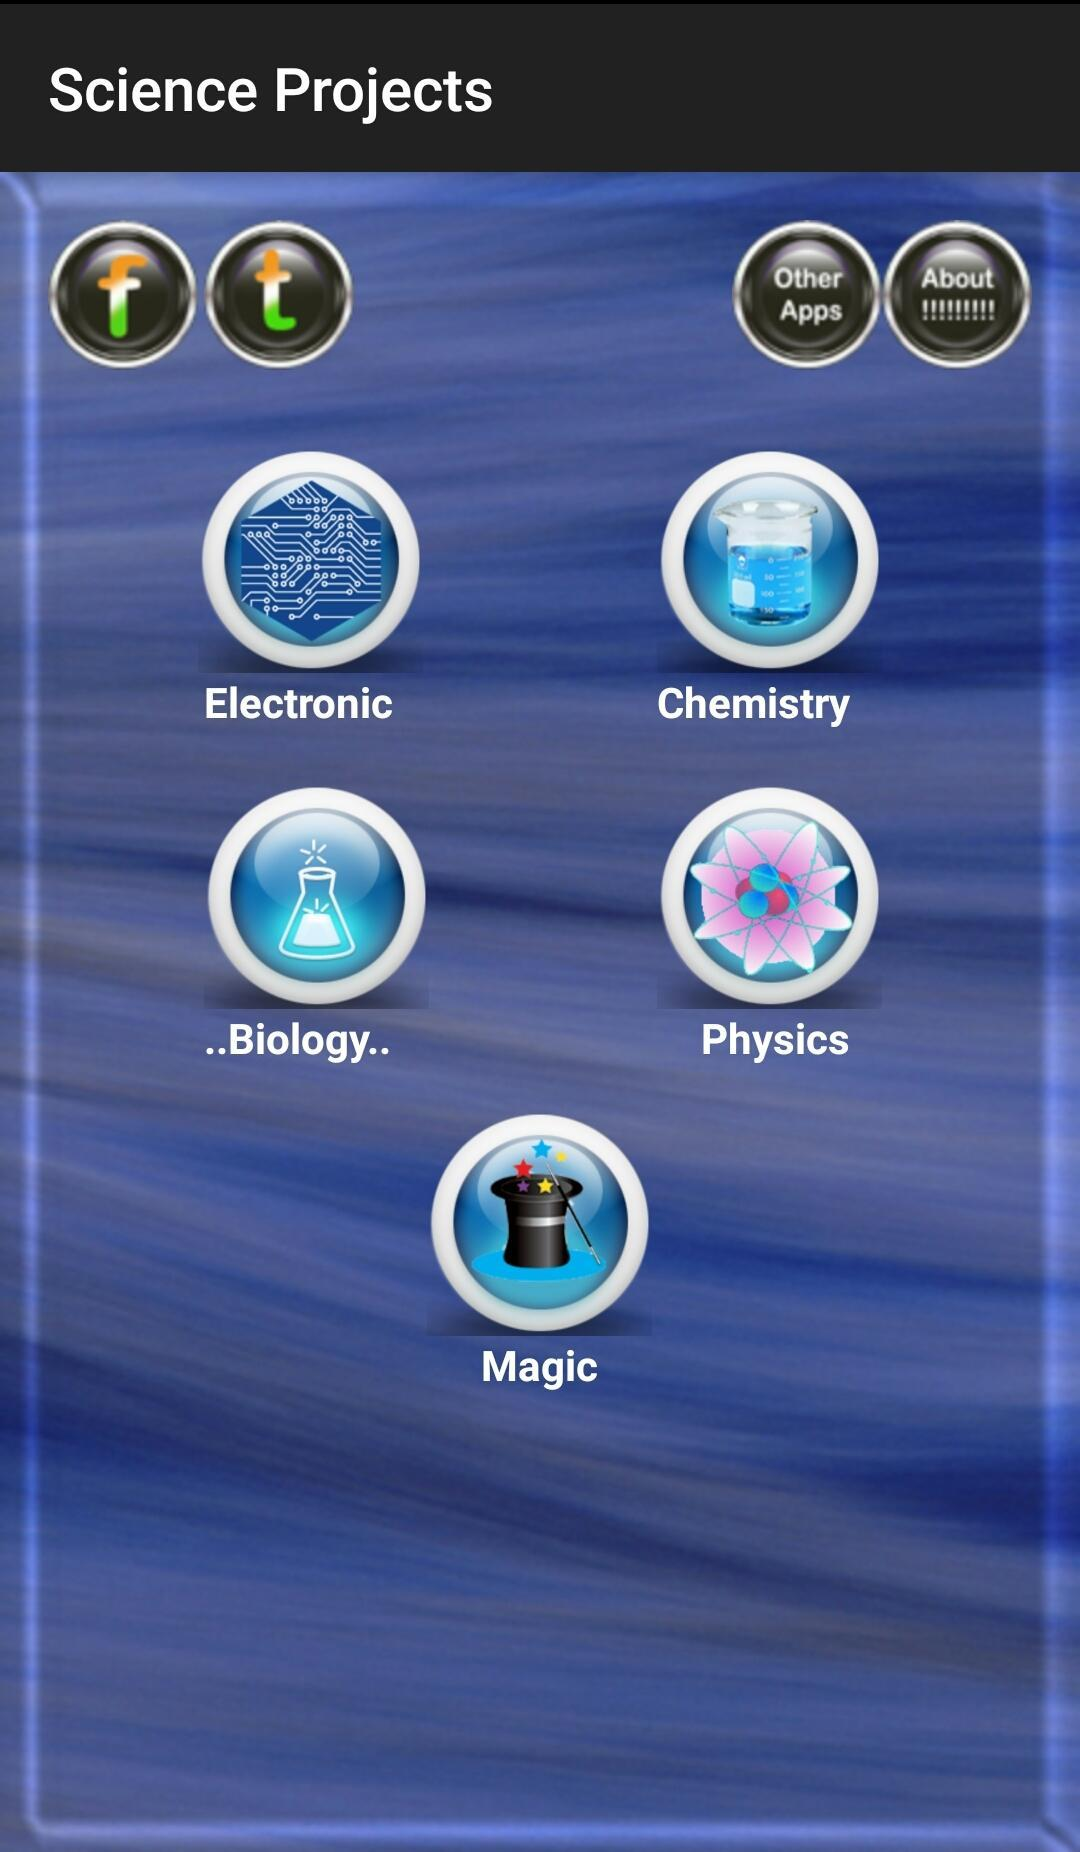 Science Project for Android - APK Download